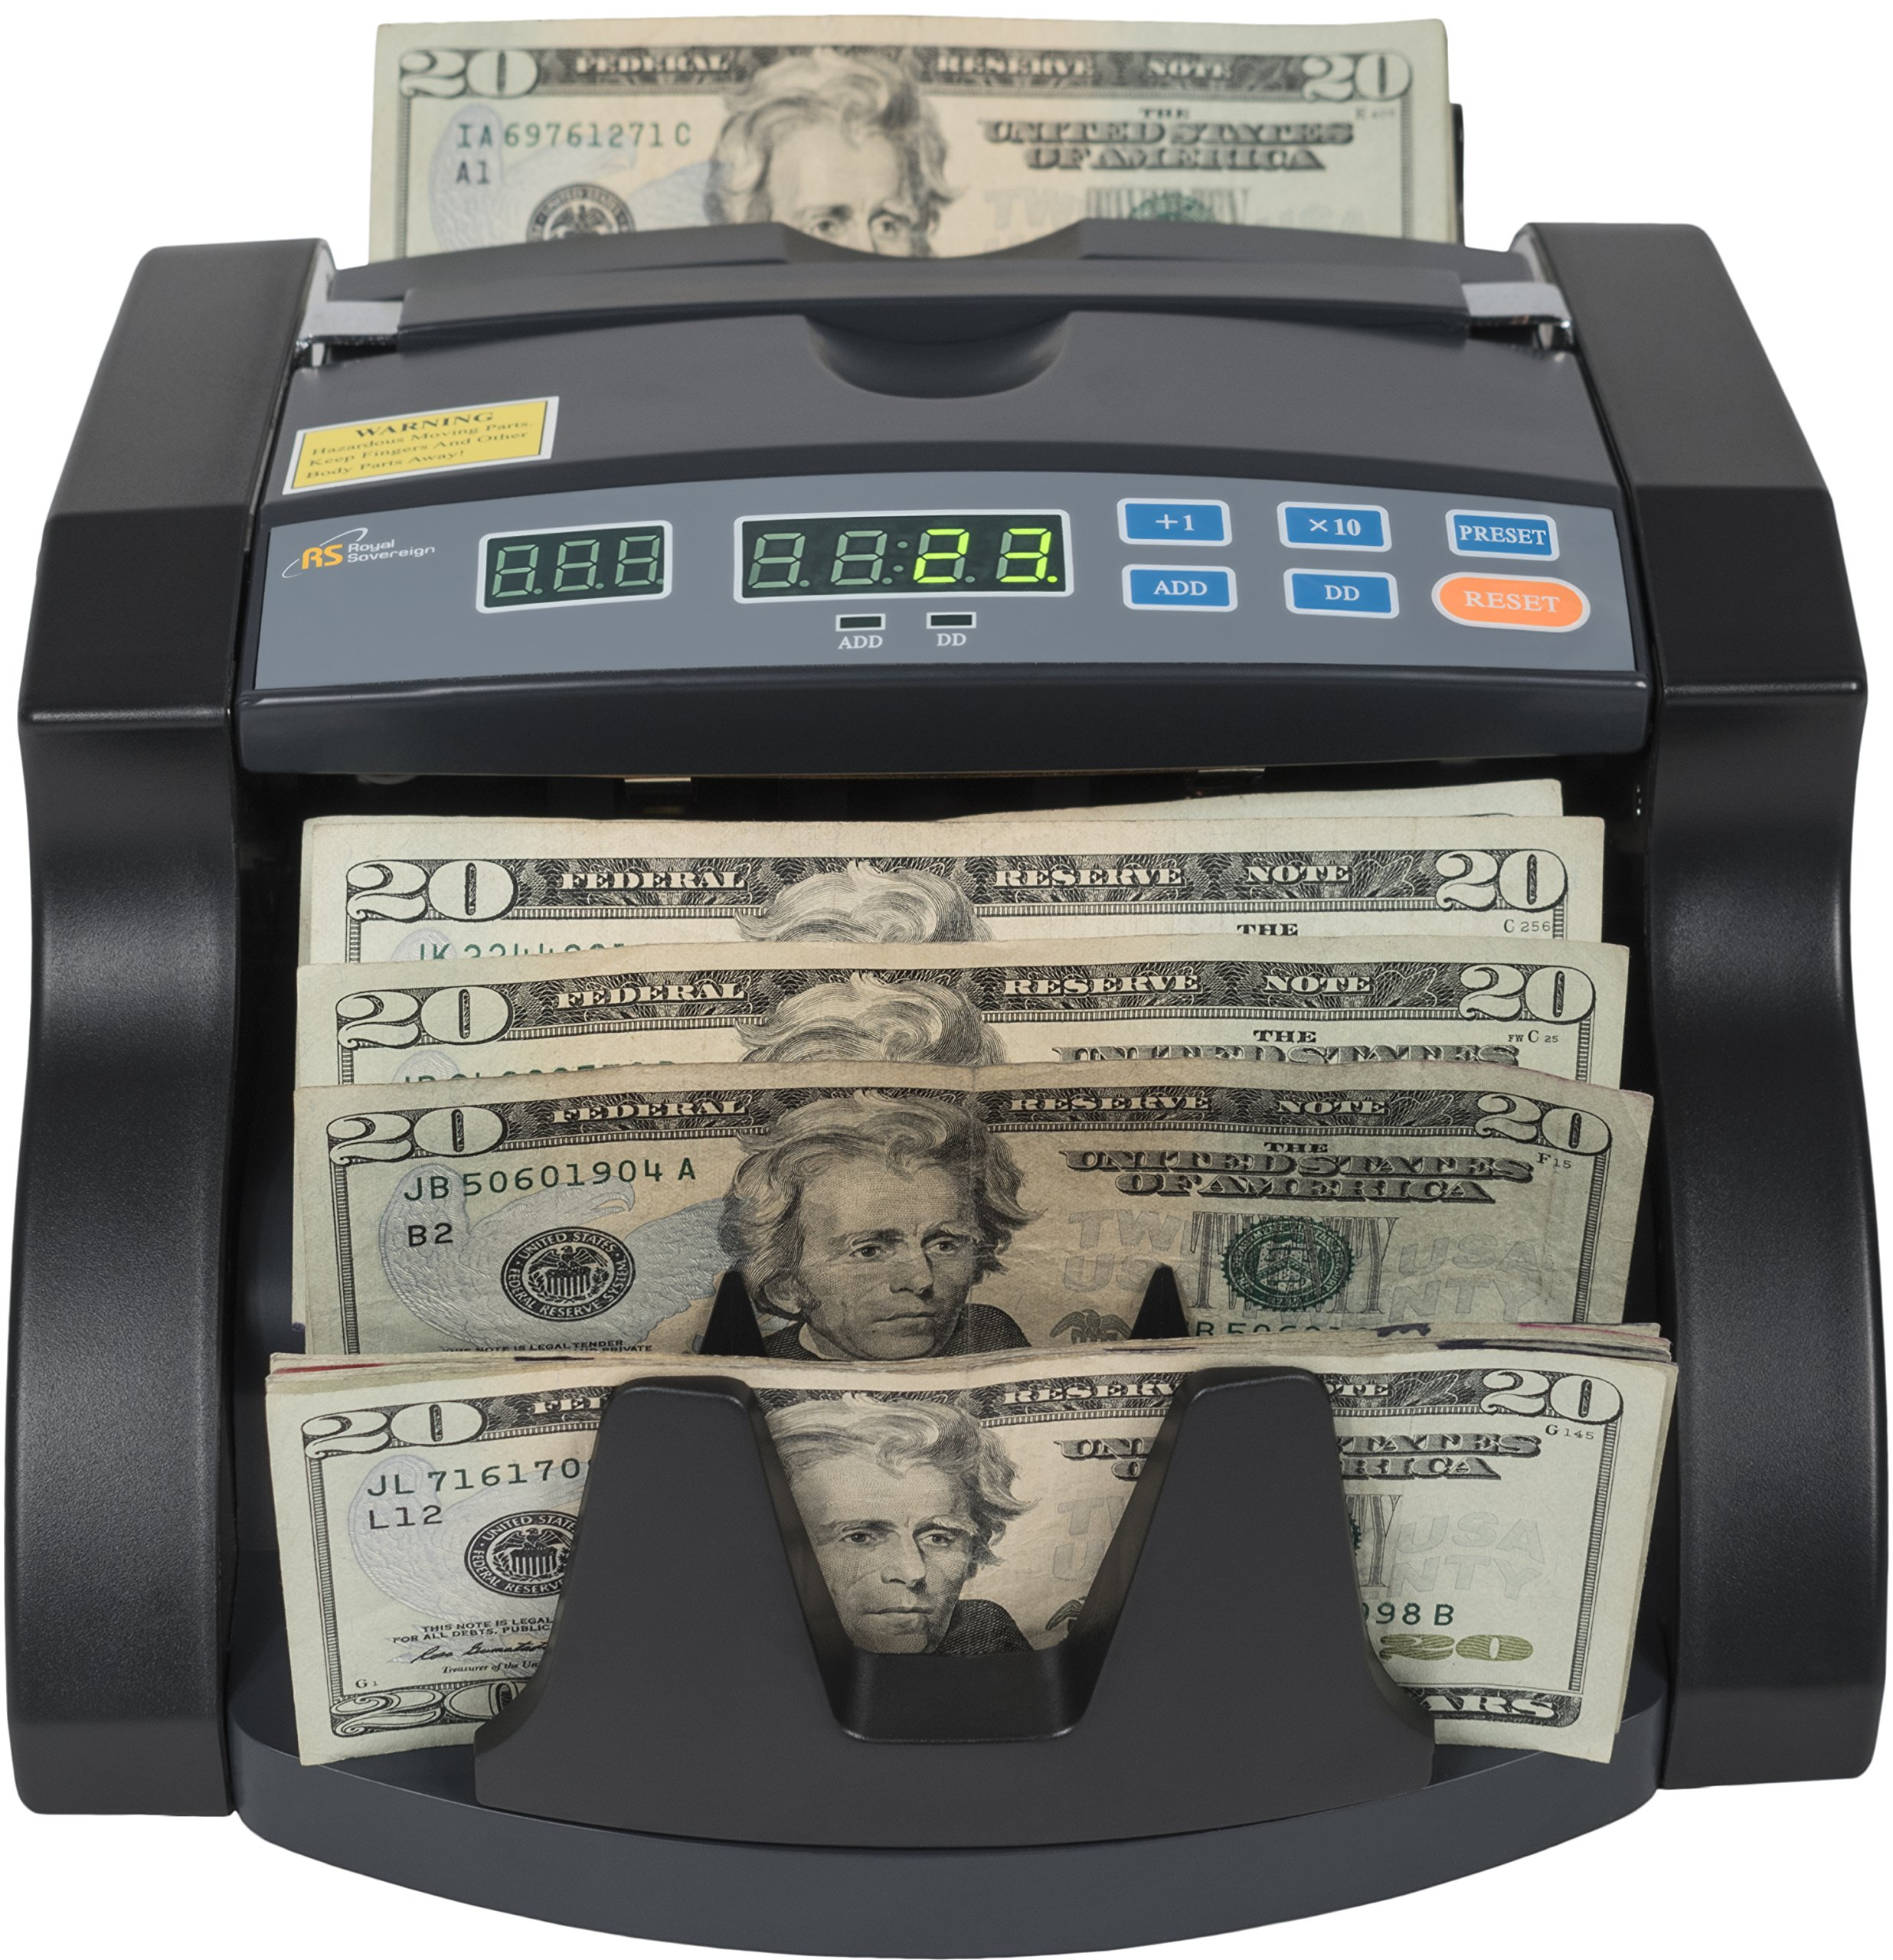 Royal Sovereign High Speed Bill Counter With Rear Dollar Bill Loader (RBC-650PRO) by Royal Sovereign